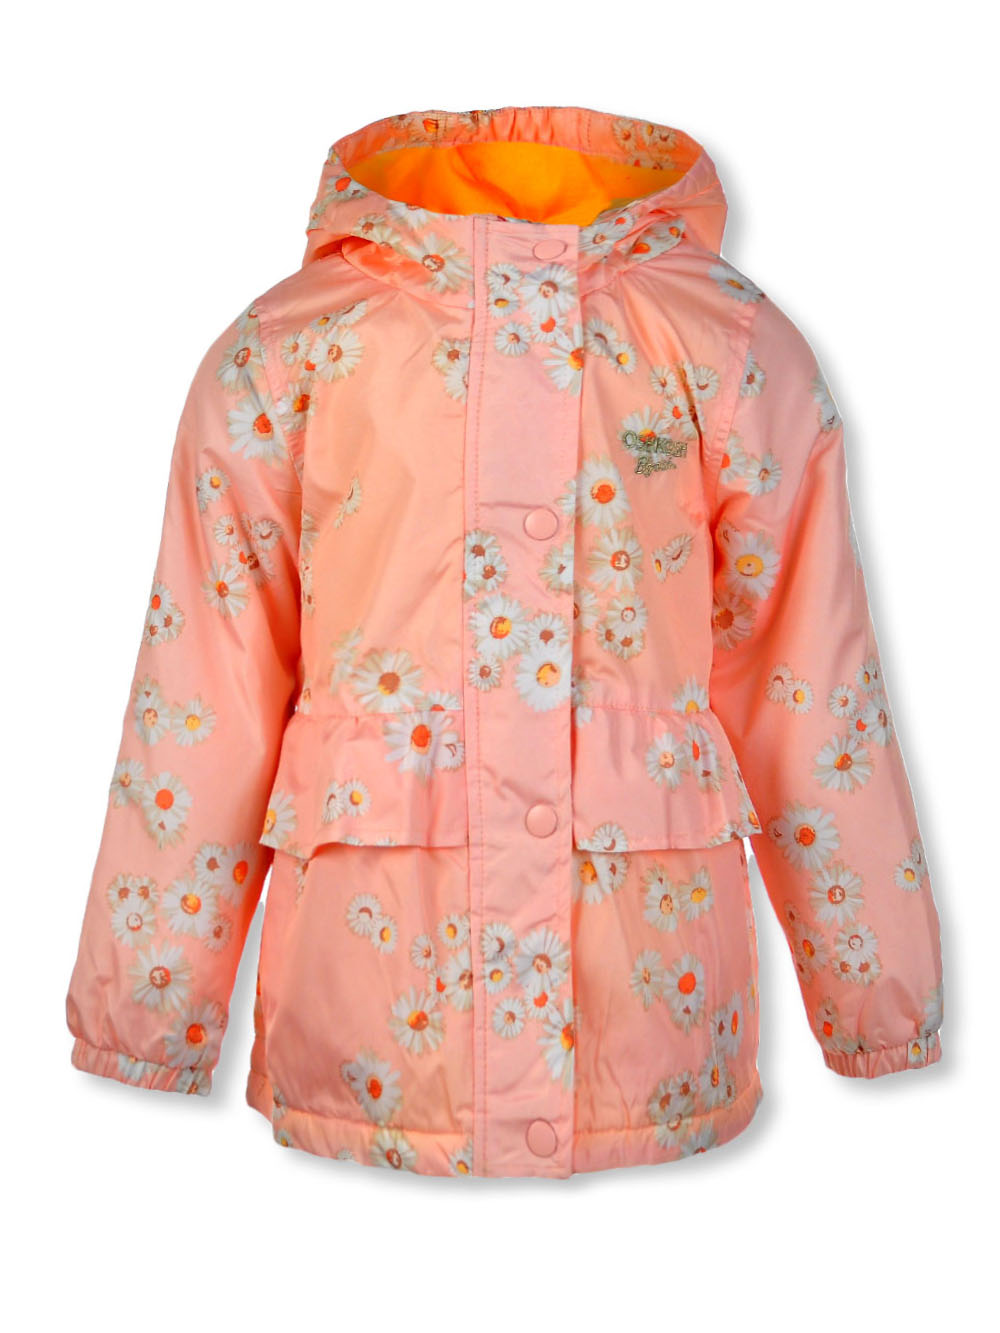 Size 5-6 Light Jackets for Girls